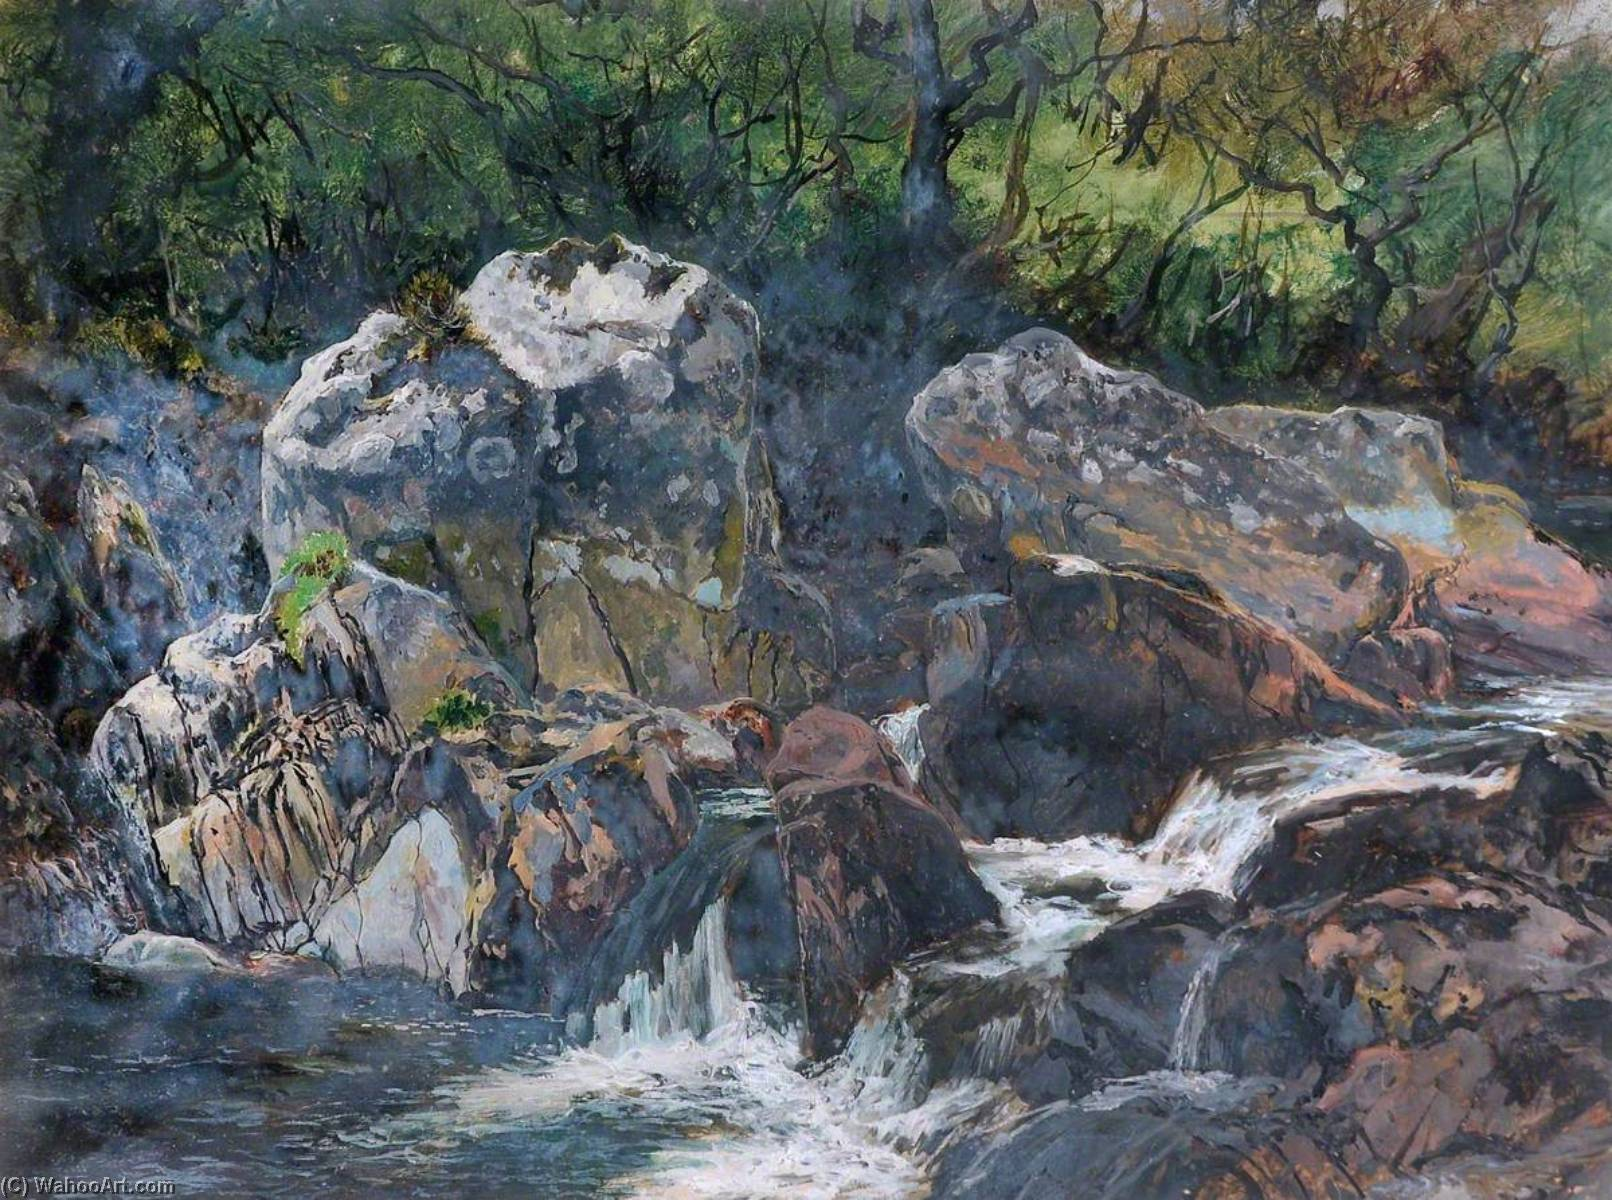 Rocks in the Colwyn, 1883 by Frederick William Hayes | Art Reproductions Frederick William Hayes | WahooArt.com